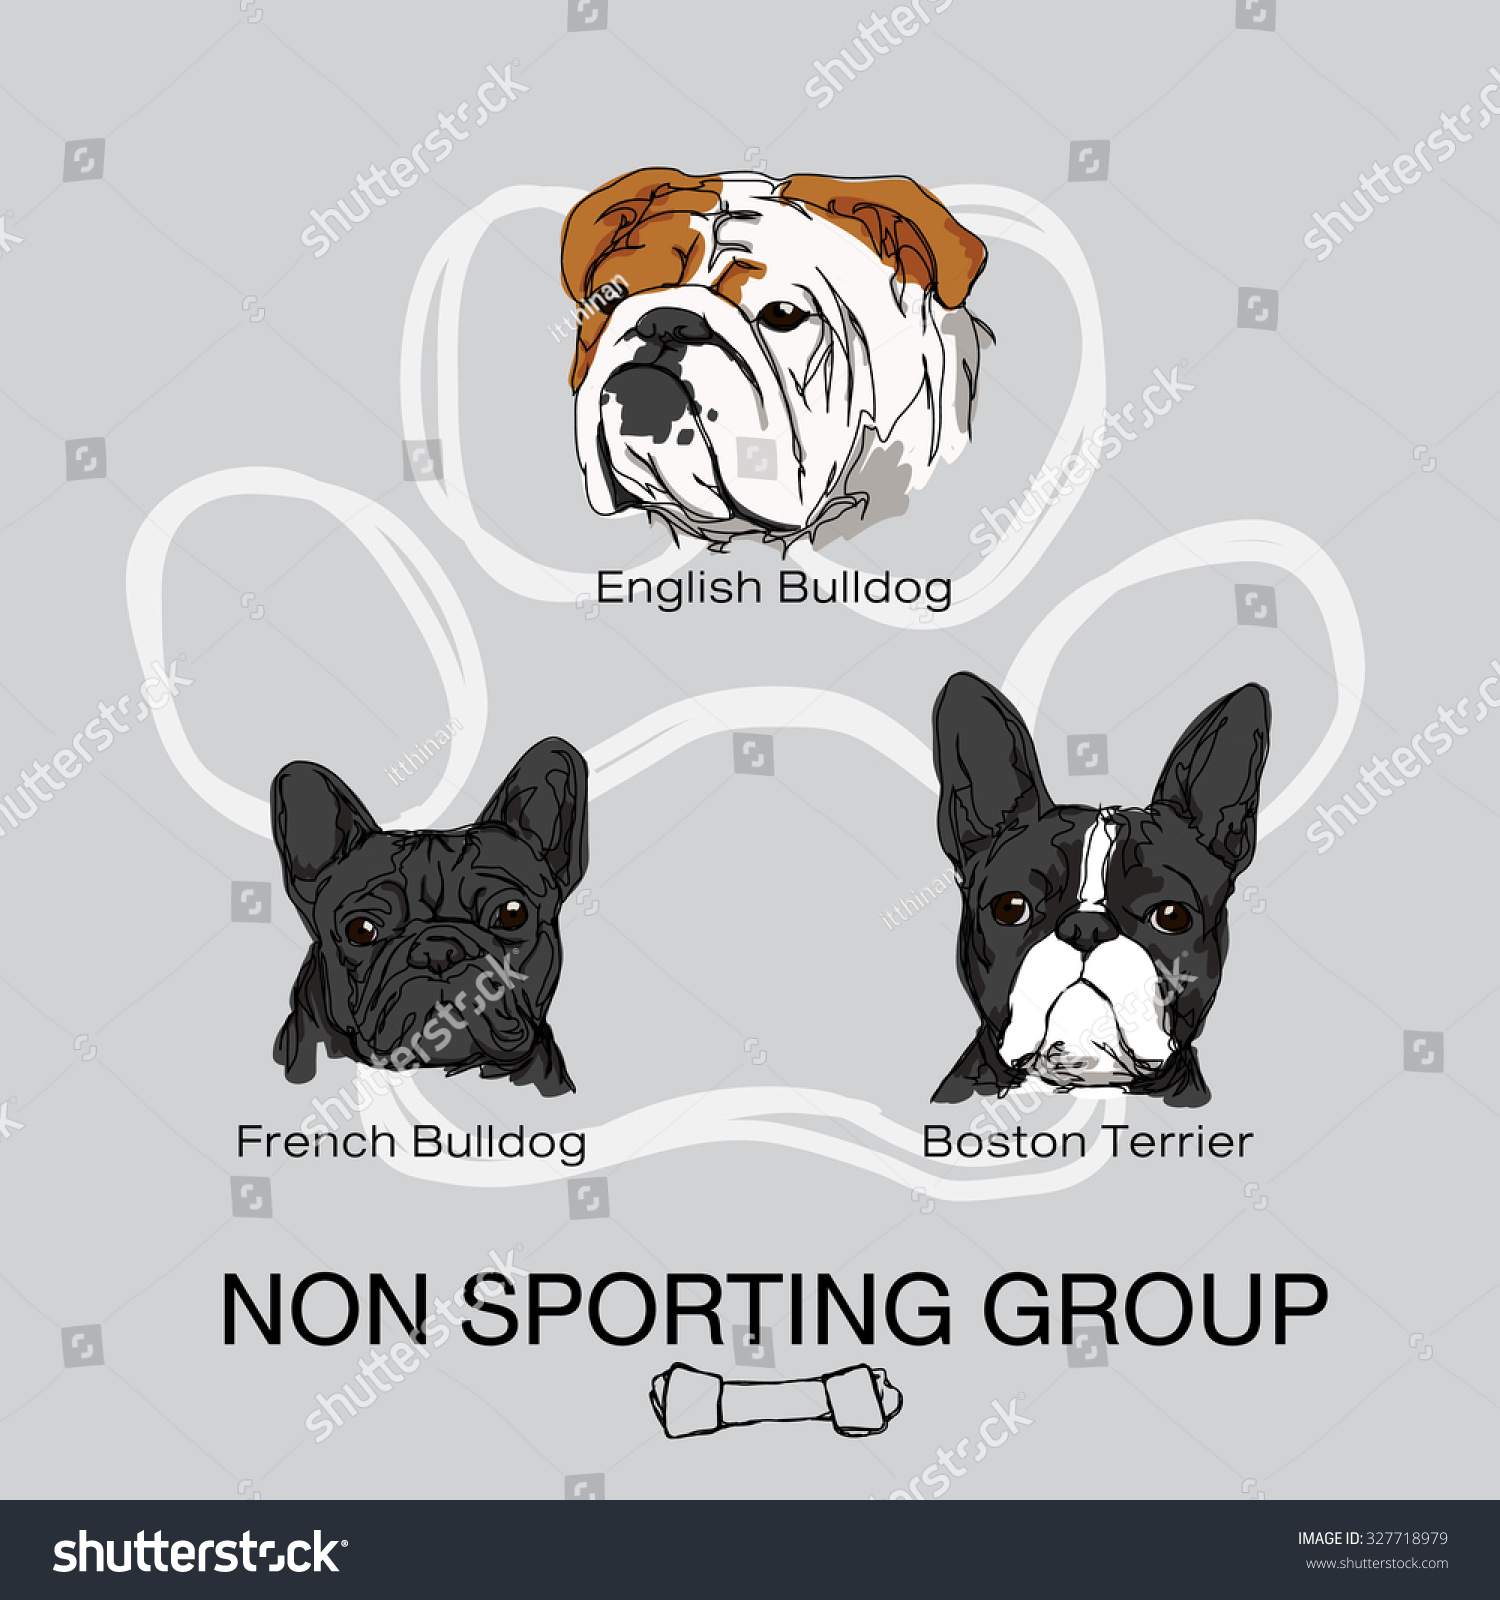 What group is a french bulldog in